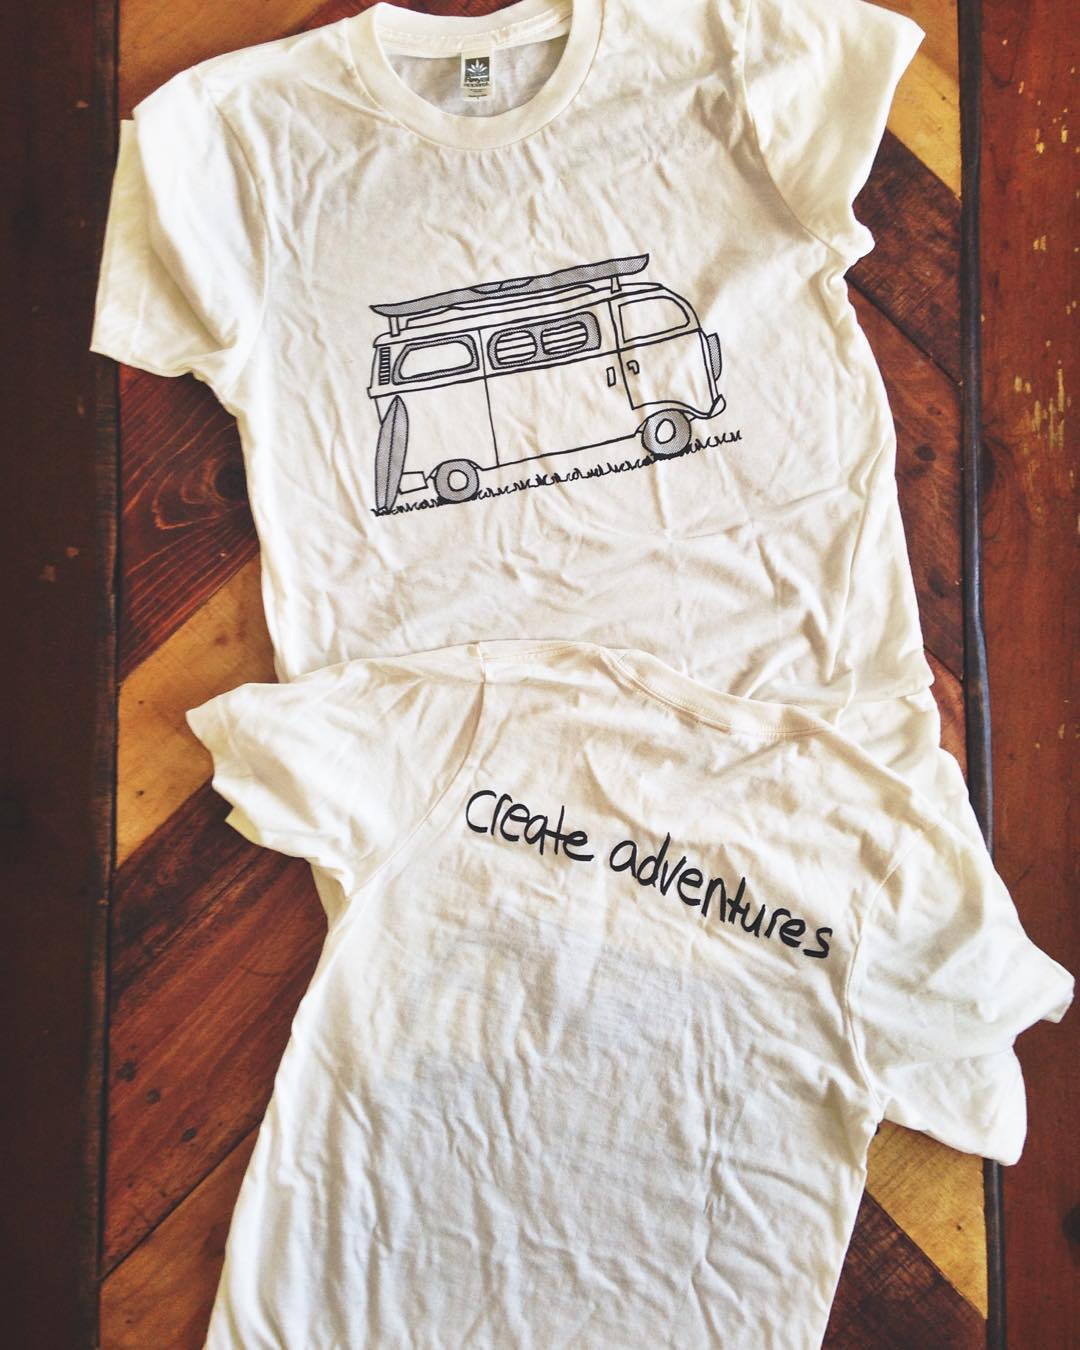 ~ Conscious Adventurer ~  One of our first original designs, The Adventure tee, will be back in our online shop by the weekend!  The perfect companion for #vanlife road trips, wilderness campsites, Baja surf journeys, and any adventure in between....